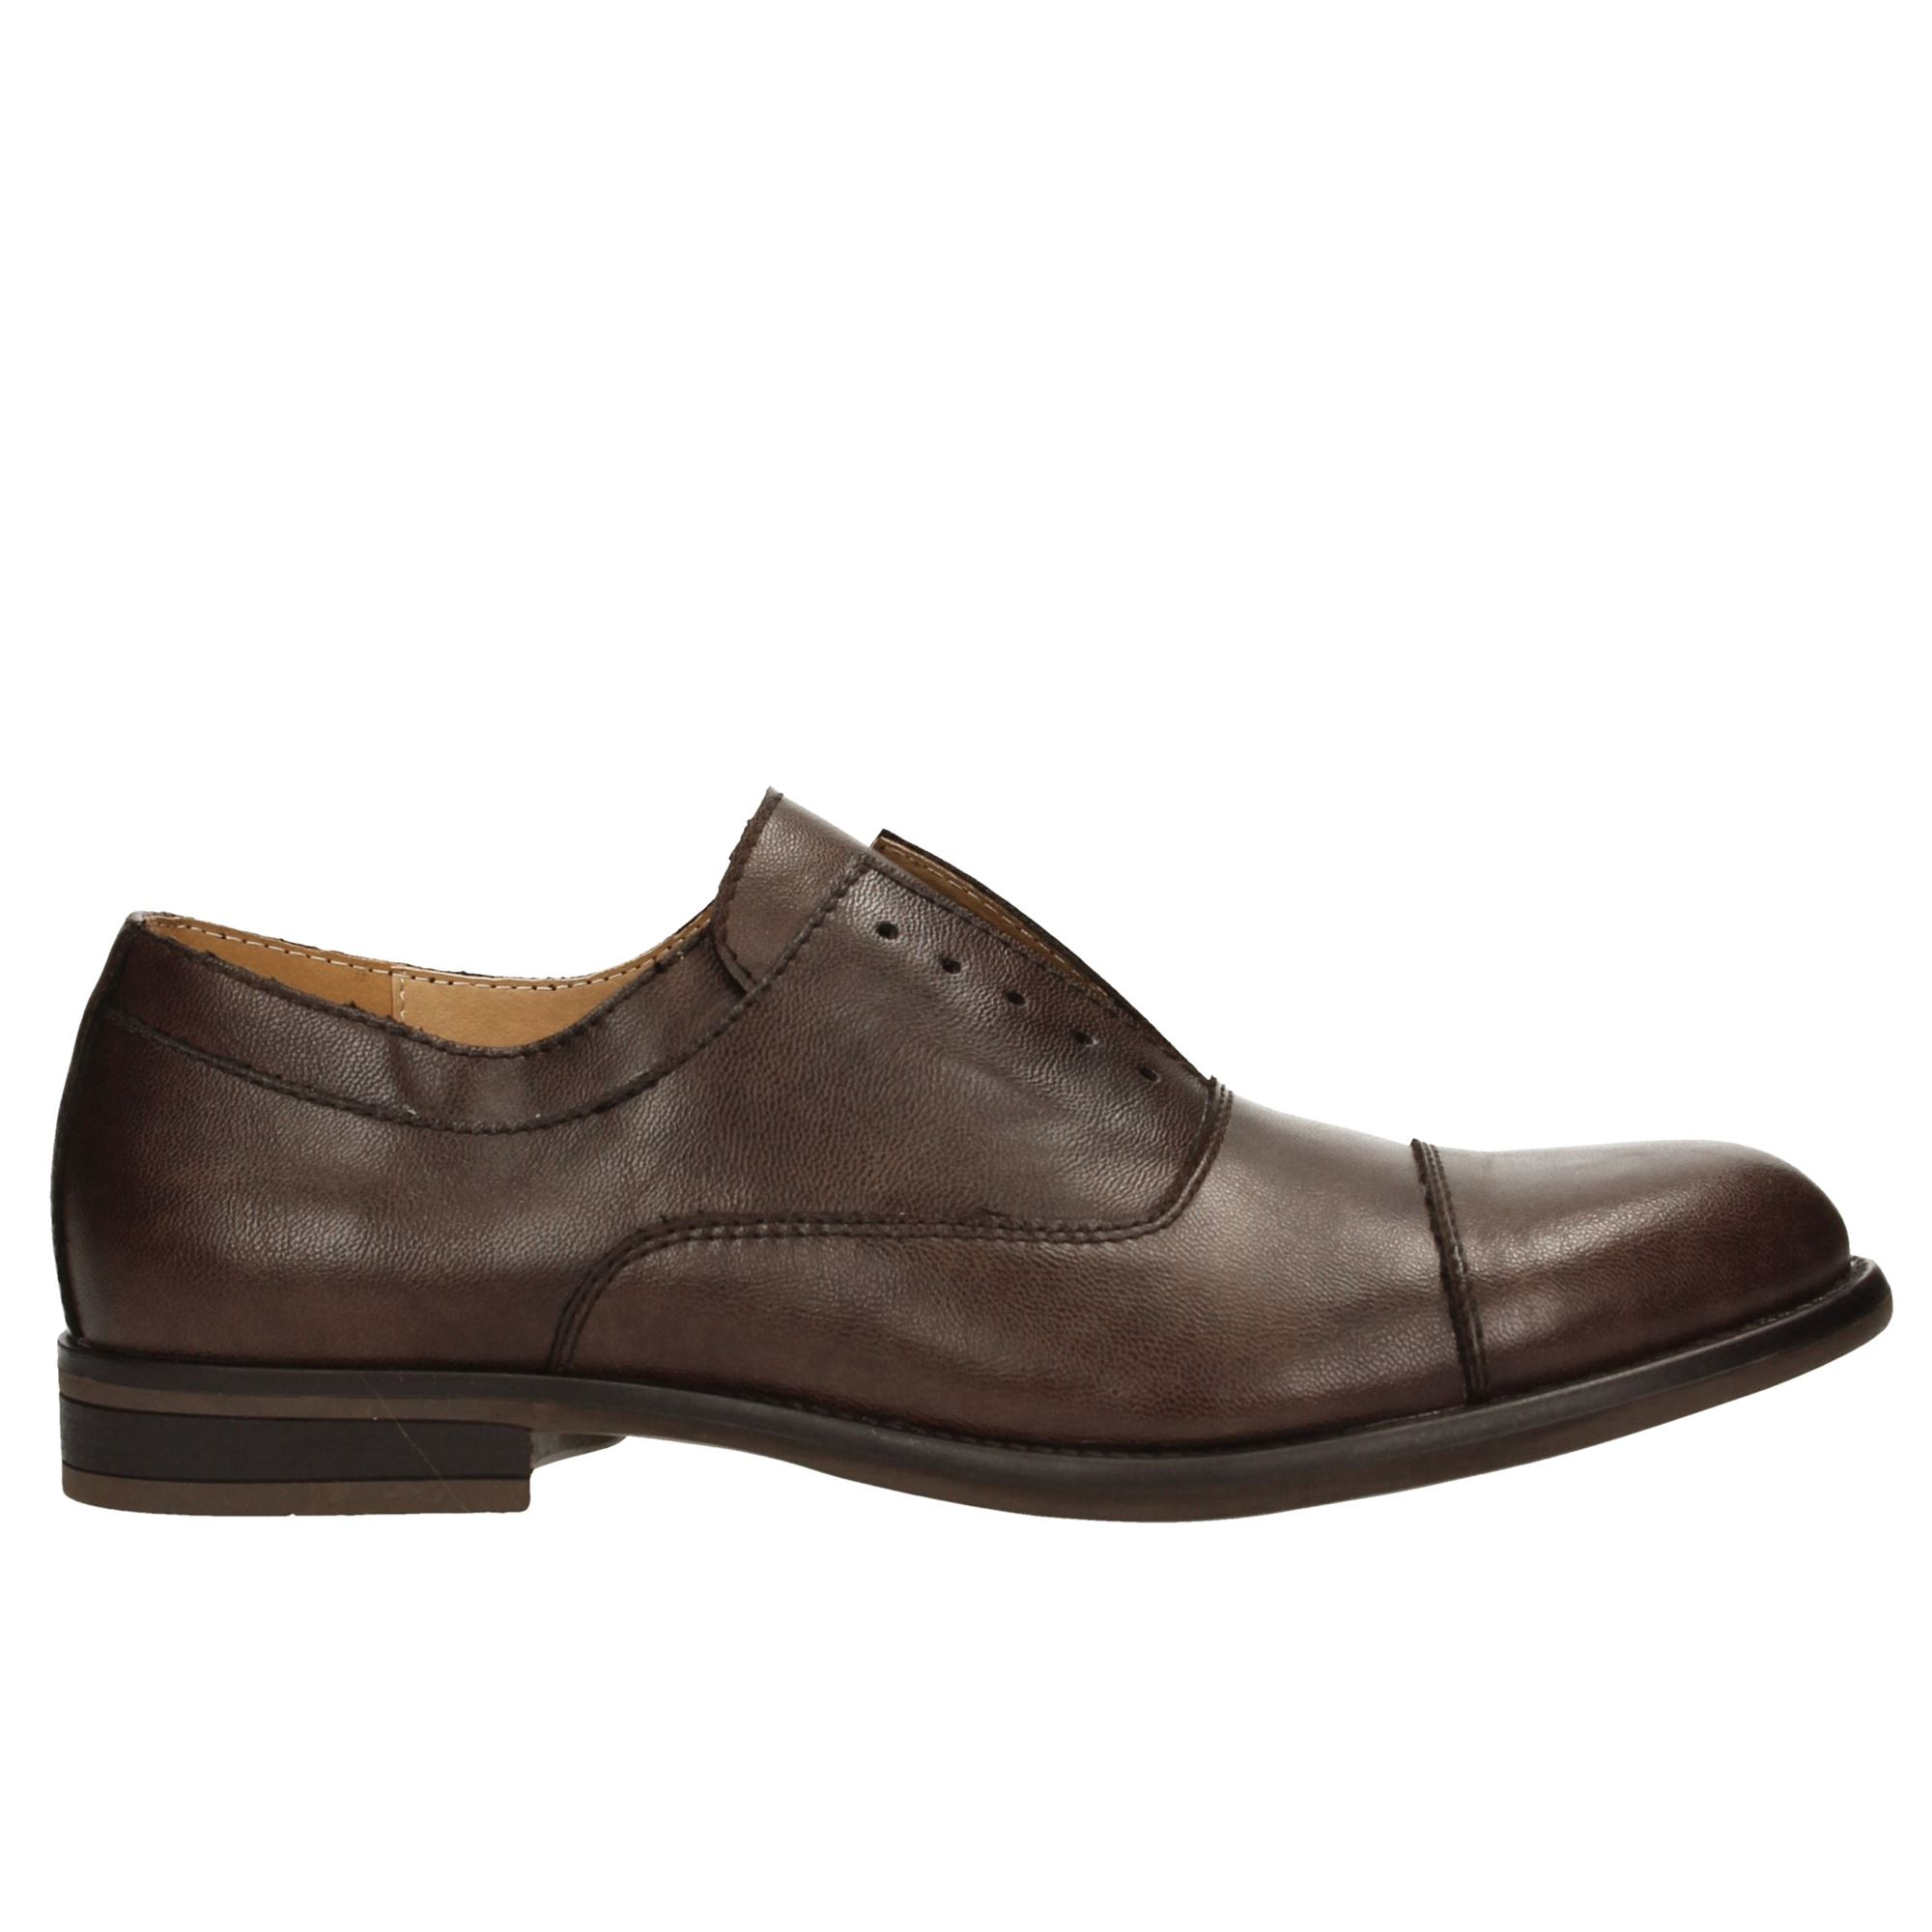 Tata Italia Shoes Man Derby Brown L18002-3